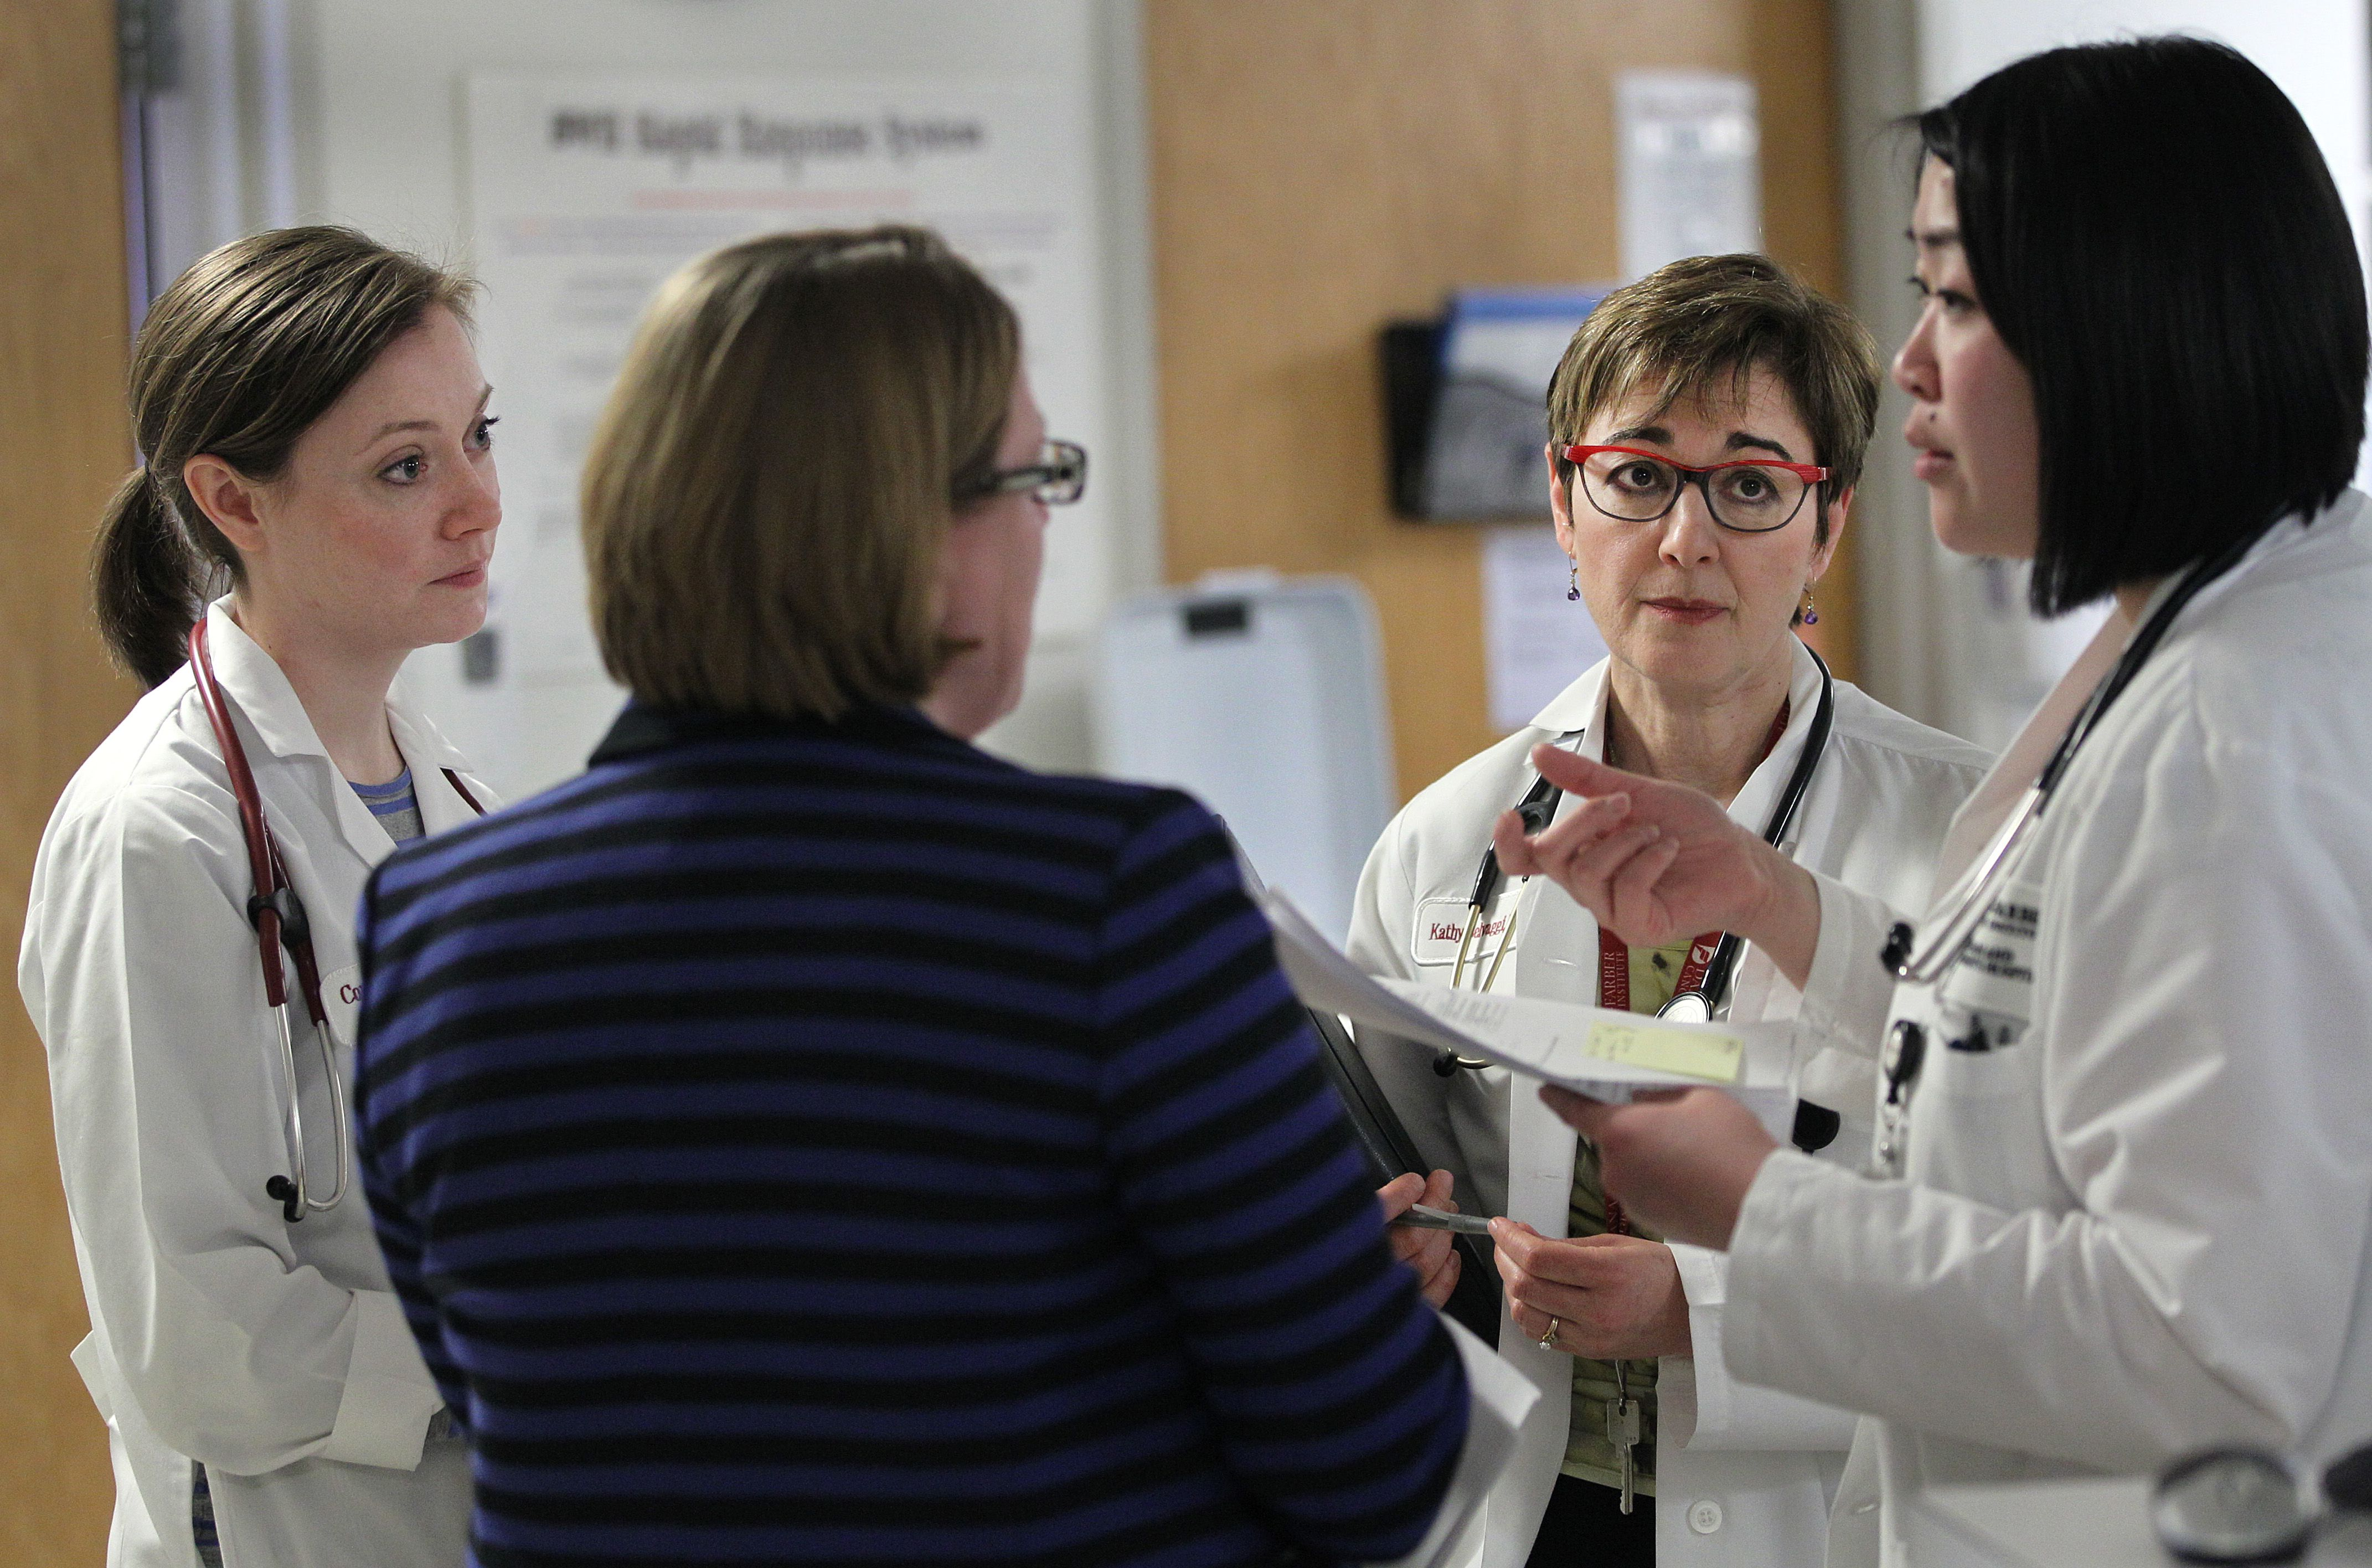 Involving patients in hospital 'rounds' can curb medical